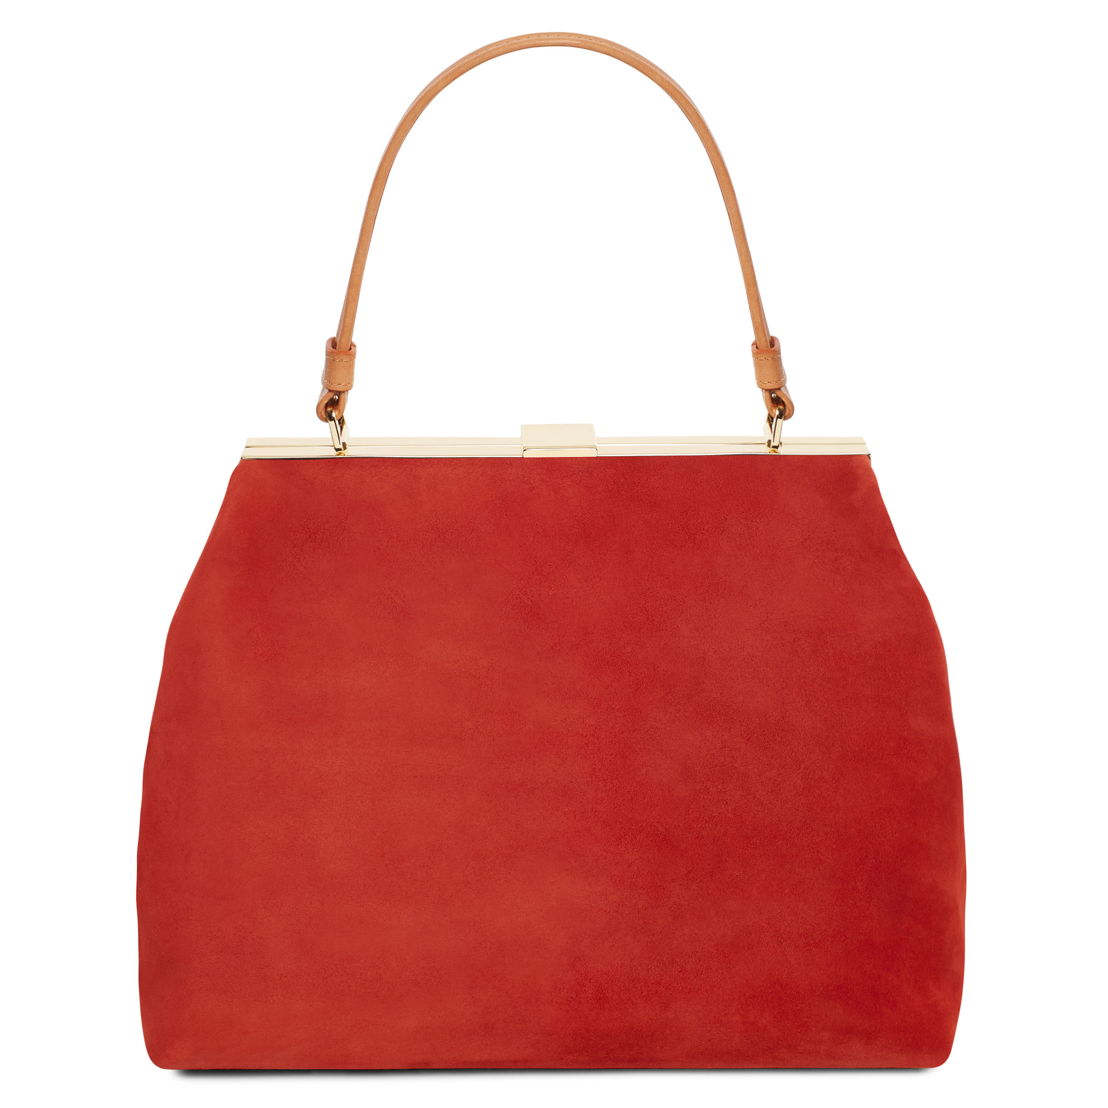 Mansur Gavriel Red at Graanmarkt 13